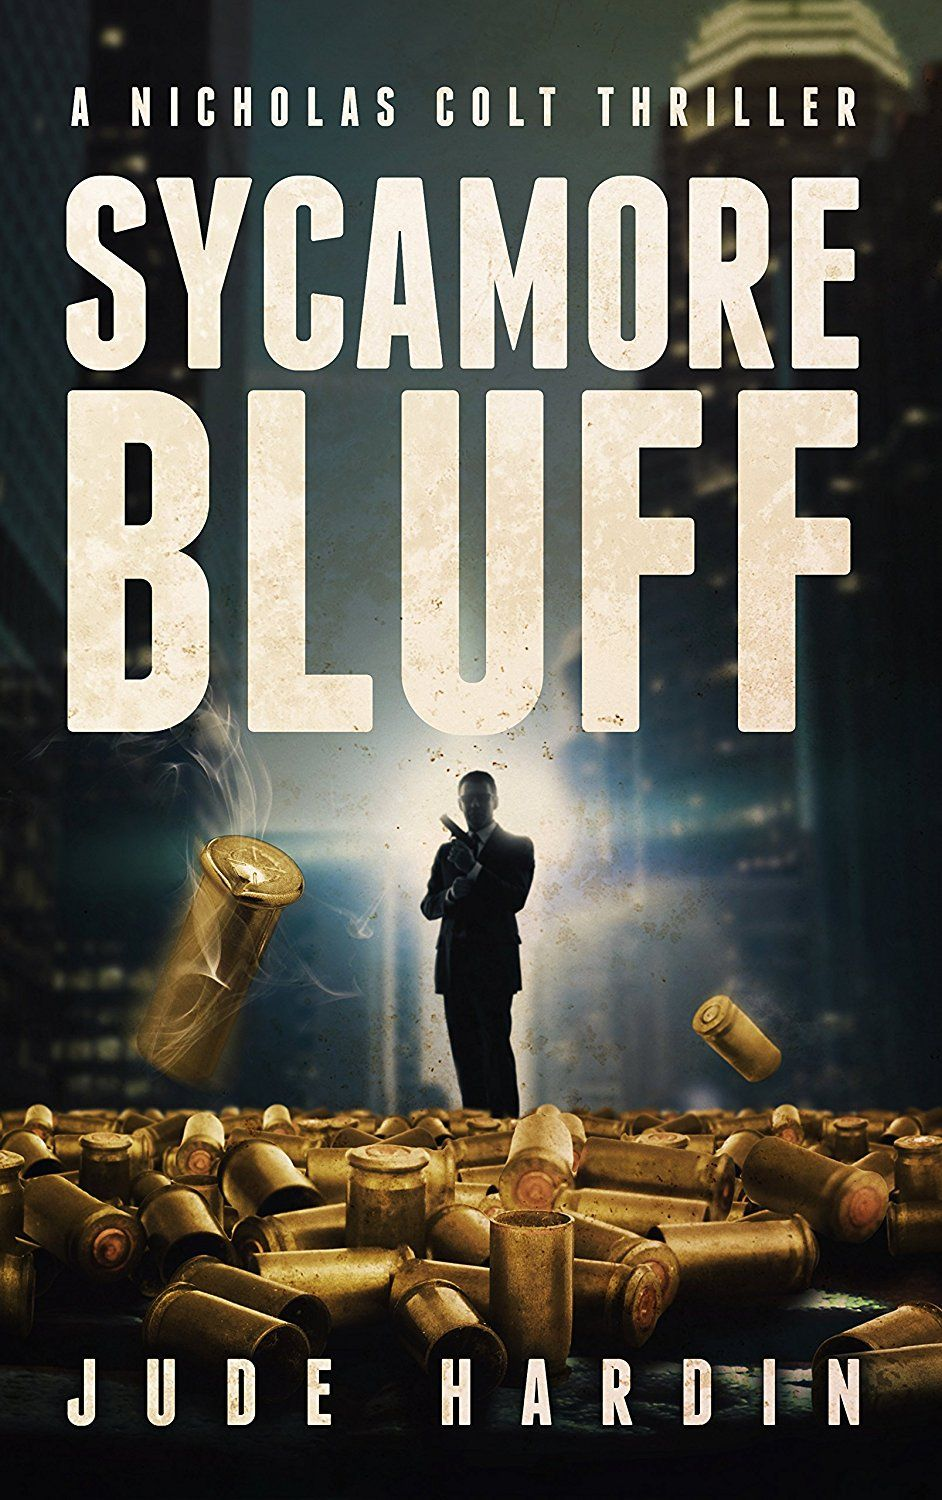 Sycamore Bluff (A Nicholas Colt Thriller) | FREE KINDLE BOOKS UK in